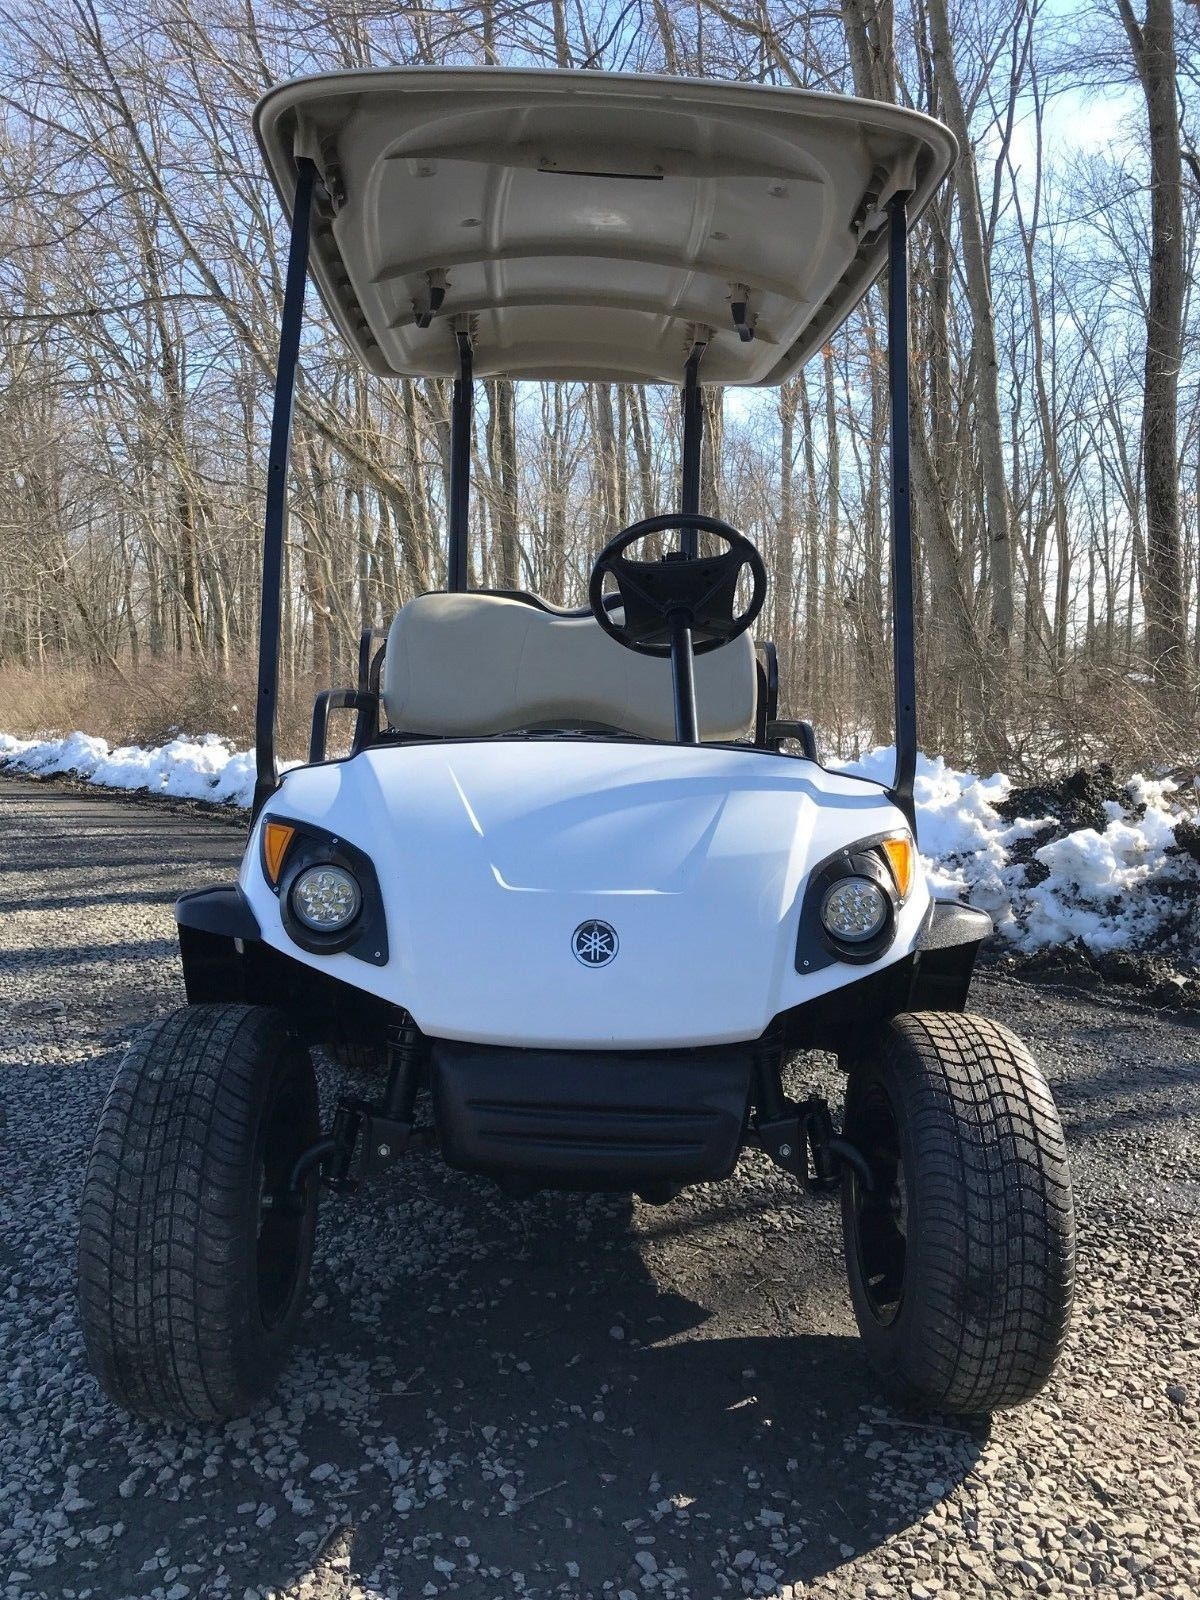 Lifted Yamaha G29 Drive Gas Golf Cart For Sale